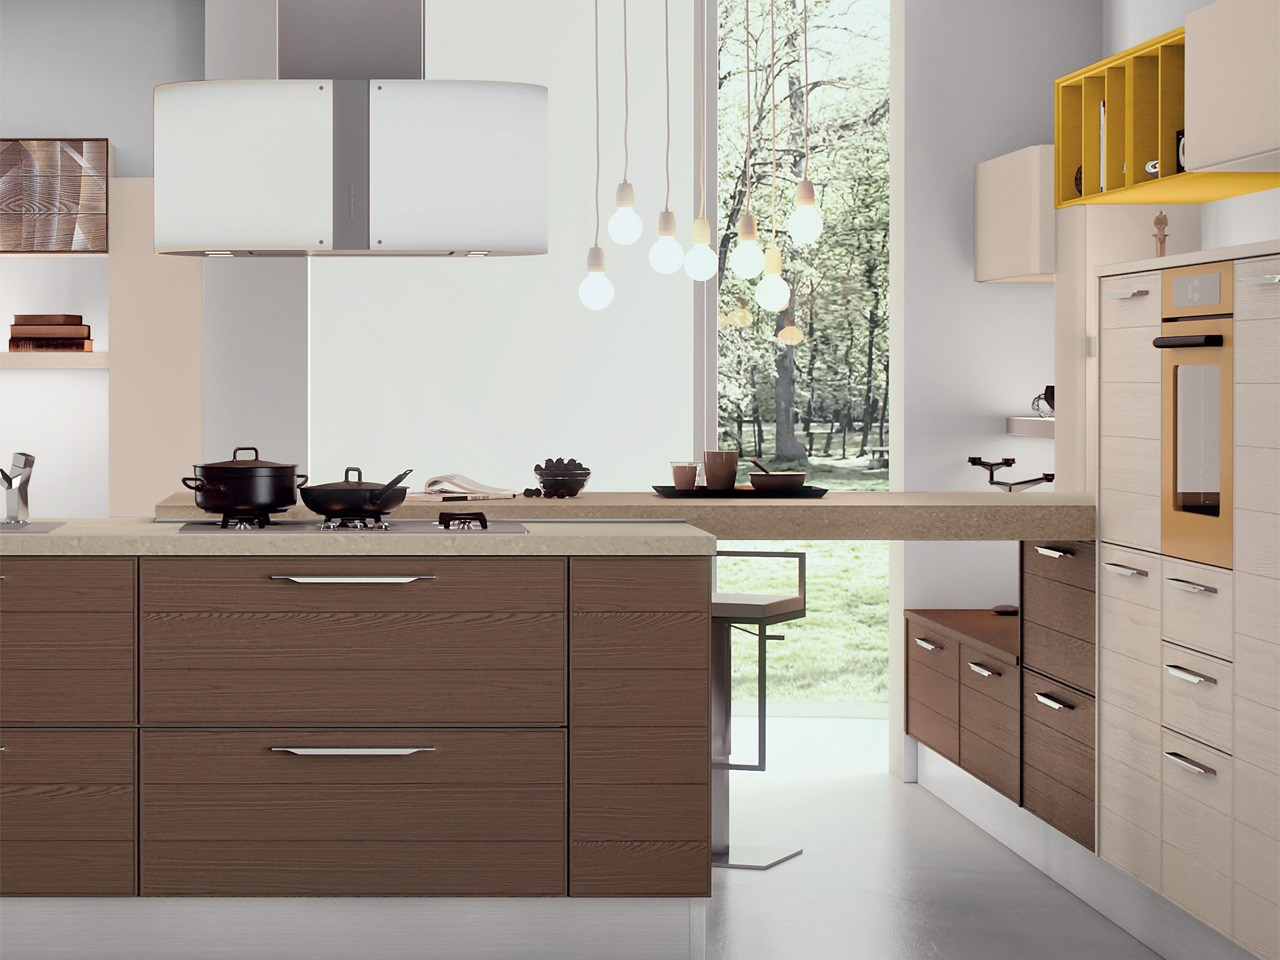 Emejing Cucina Adele Lube Contemporary - Design & Ideas 2017 ...